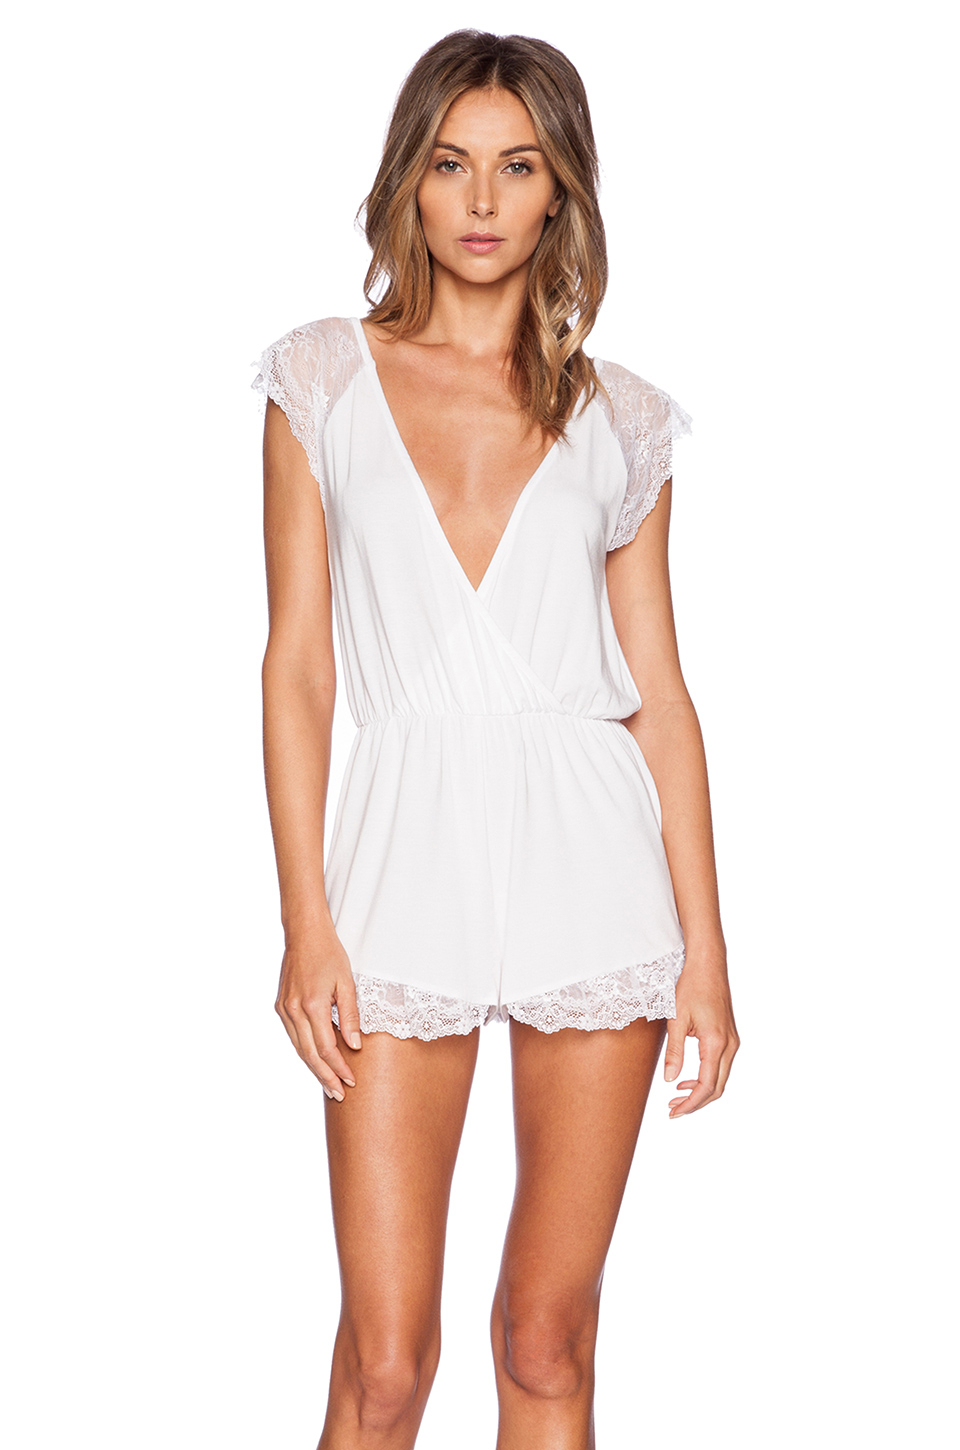 Wildfox Intimates To Have And To Hold Romper in White   Lyst Victoria Beckham Clothing